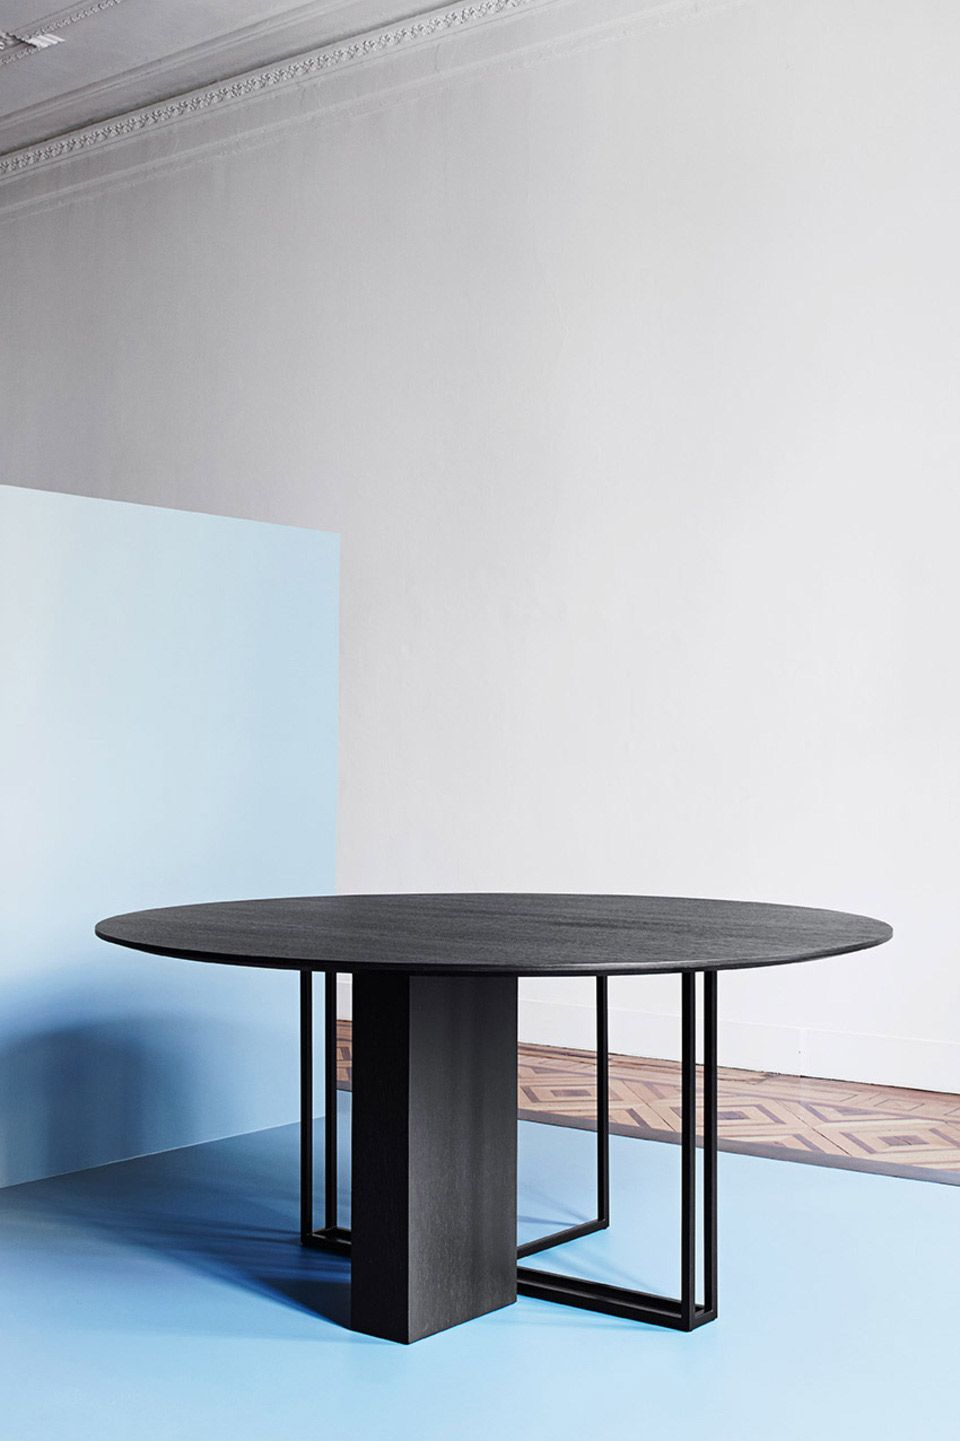 Plinto Sleek Interplay Of Shapes In Design Dining Table Modern